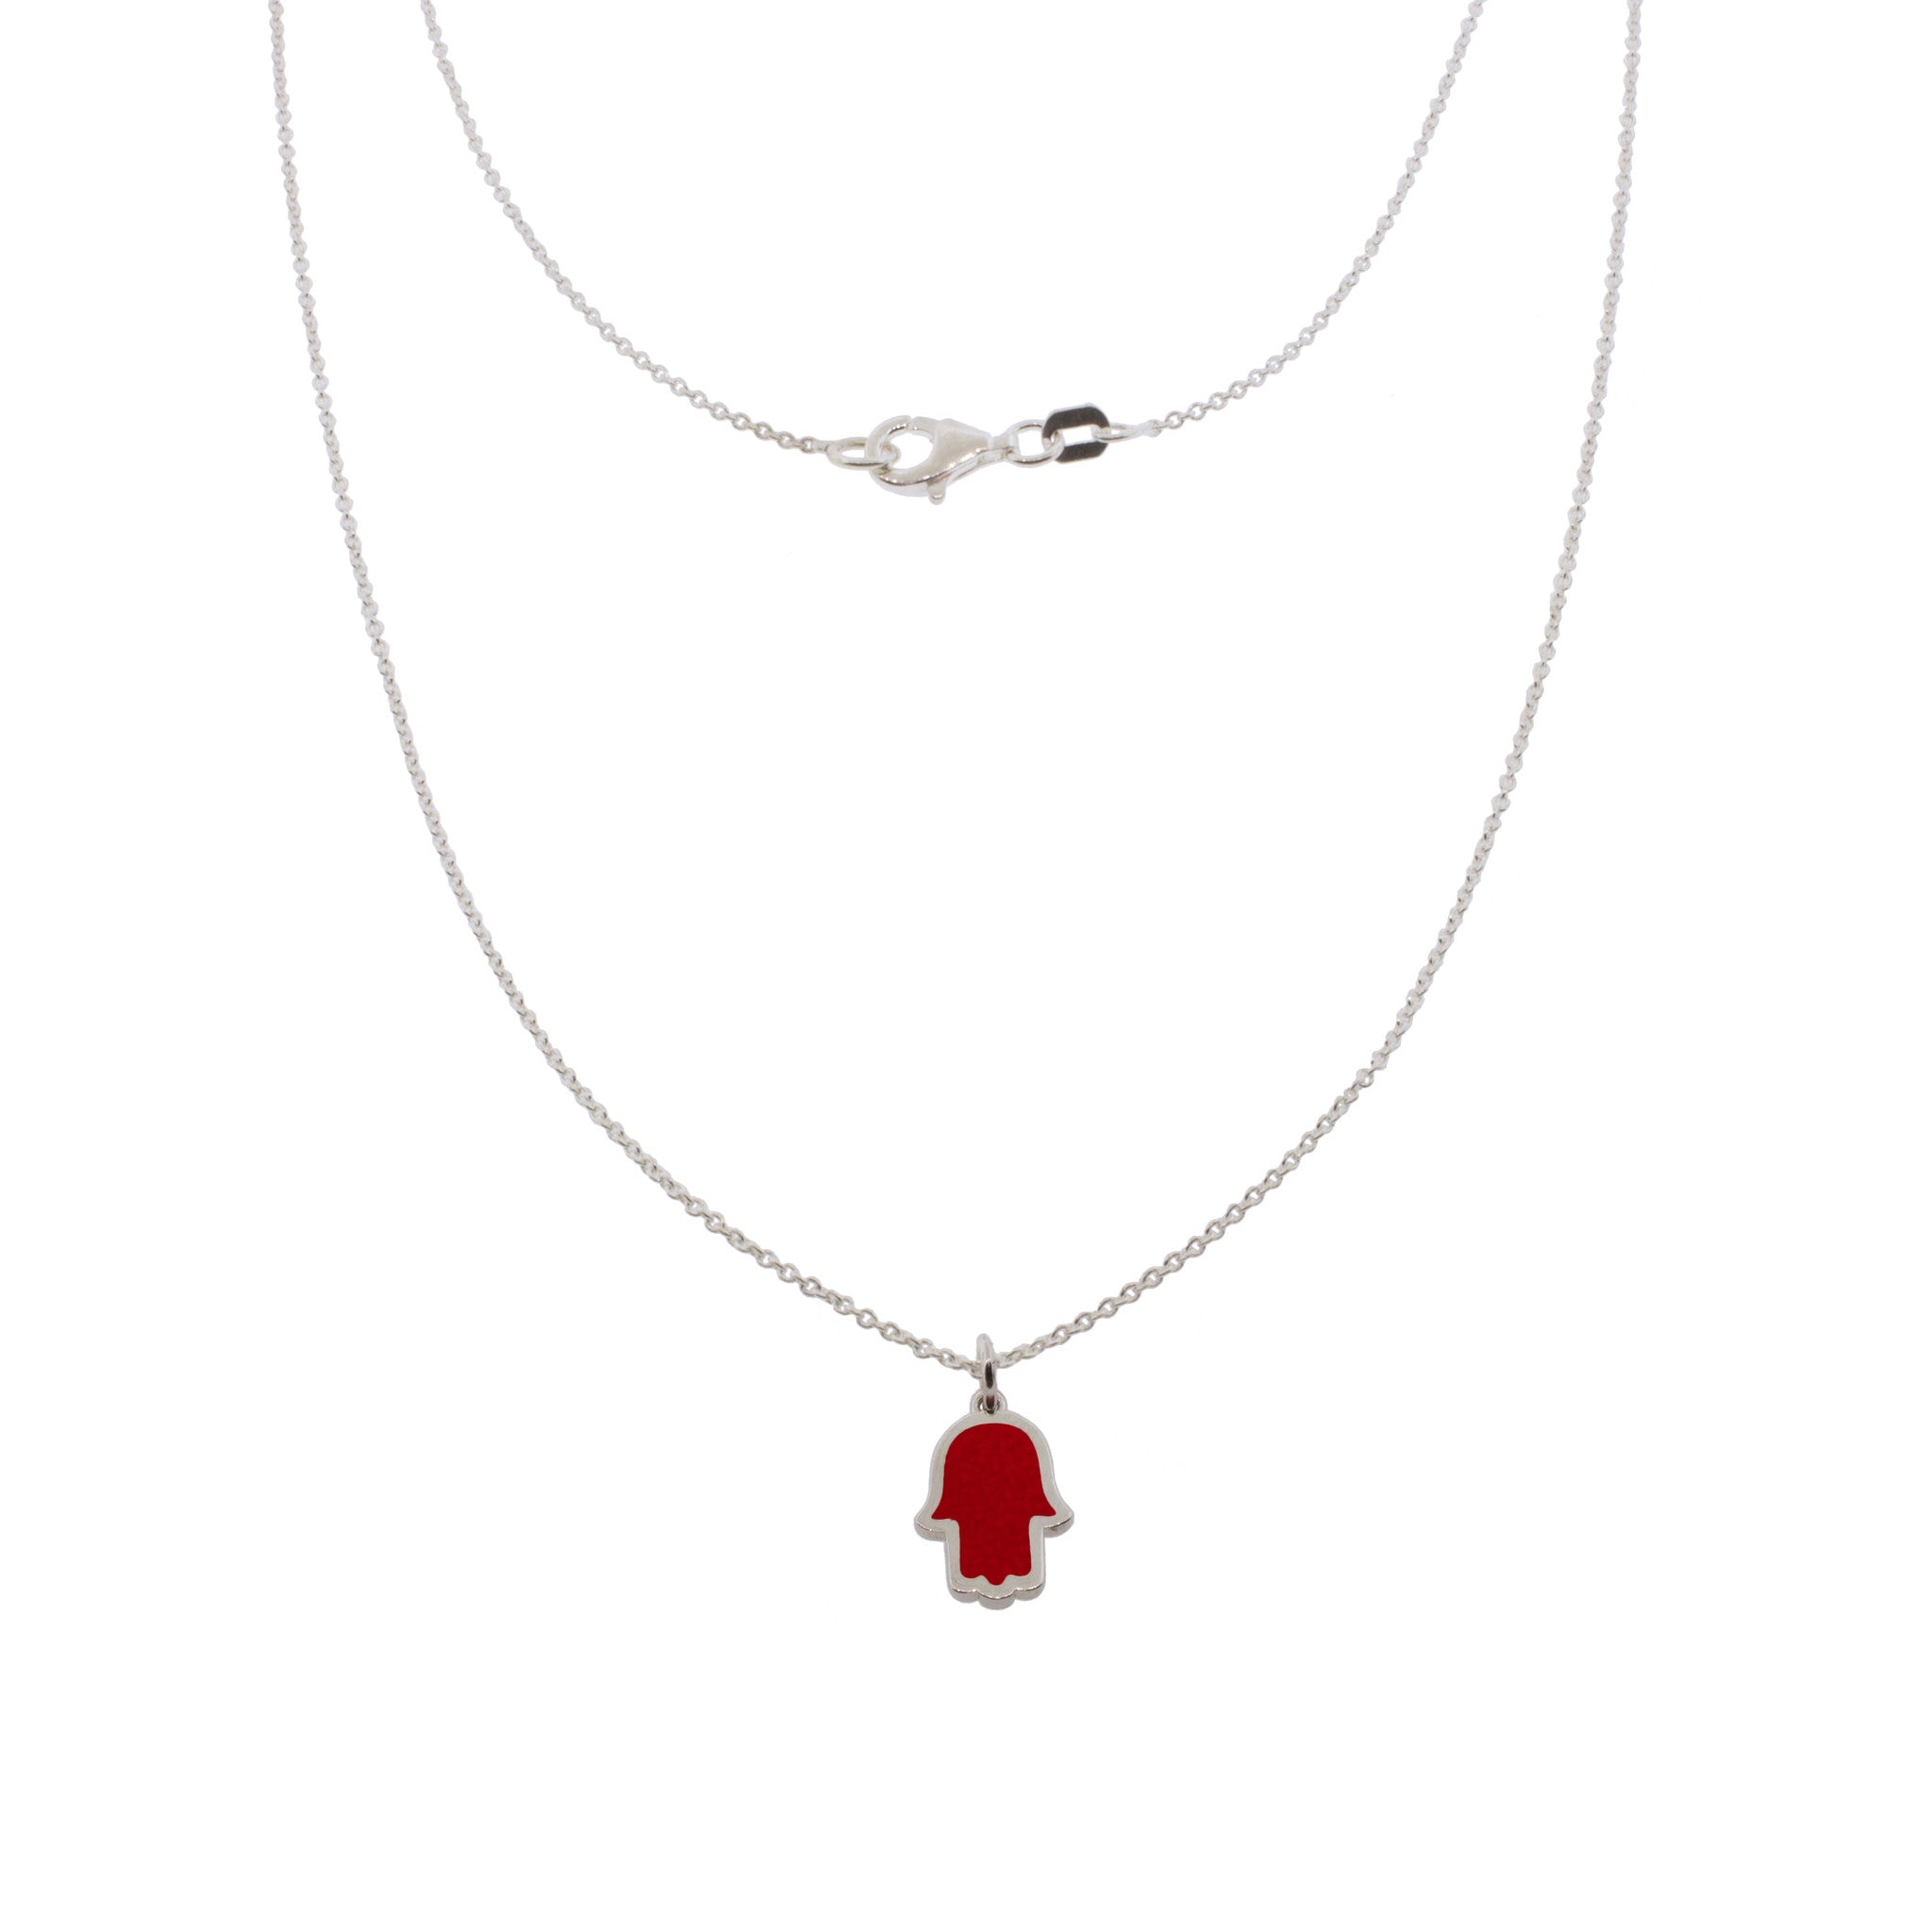 17-inch Touch of Luck Sterling Silver Necklace - Red